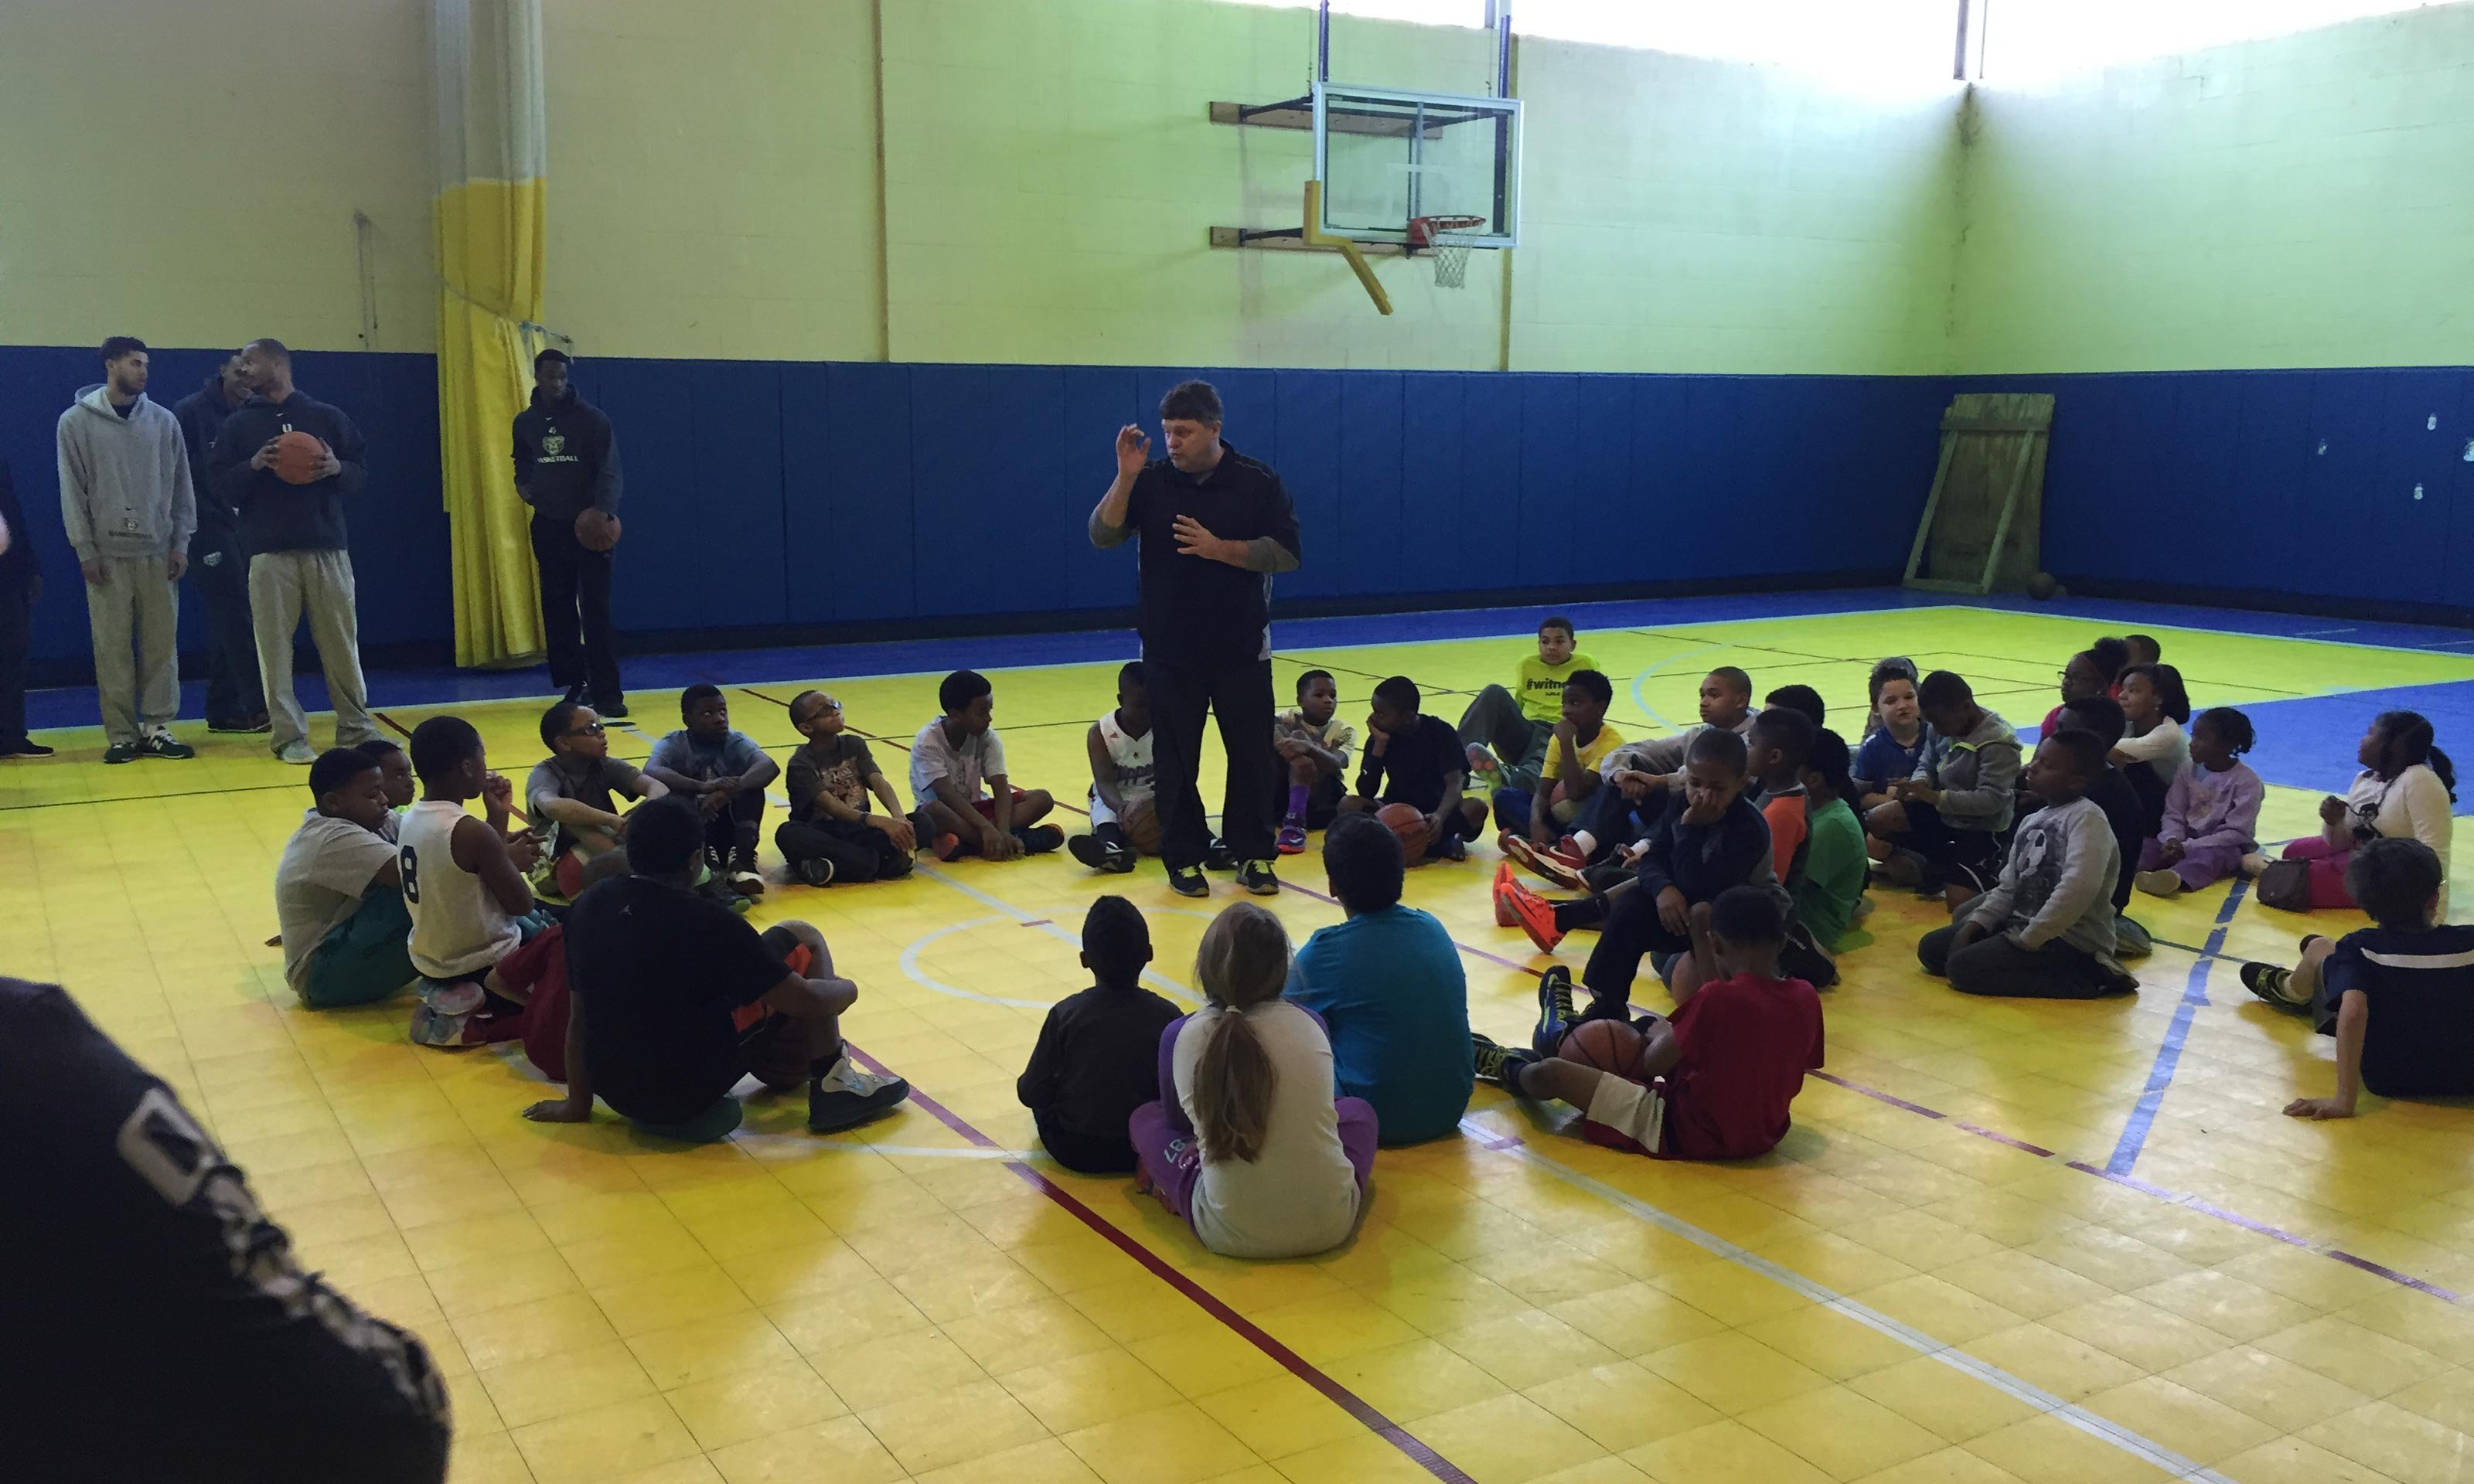 Coach Greg Kampe speaks to elementary kids seated circled around him in a gym.